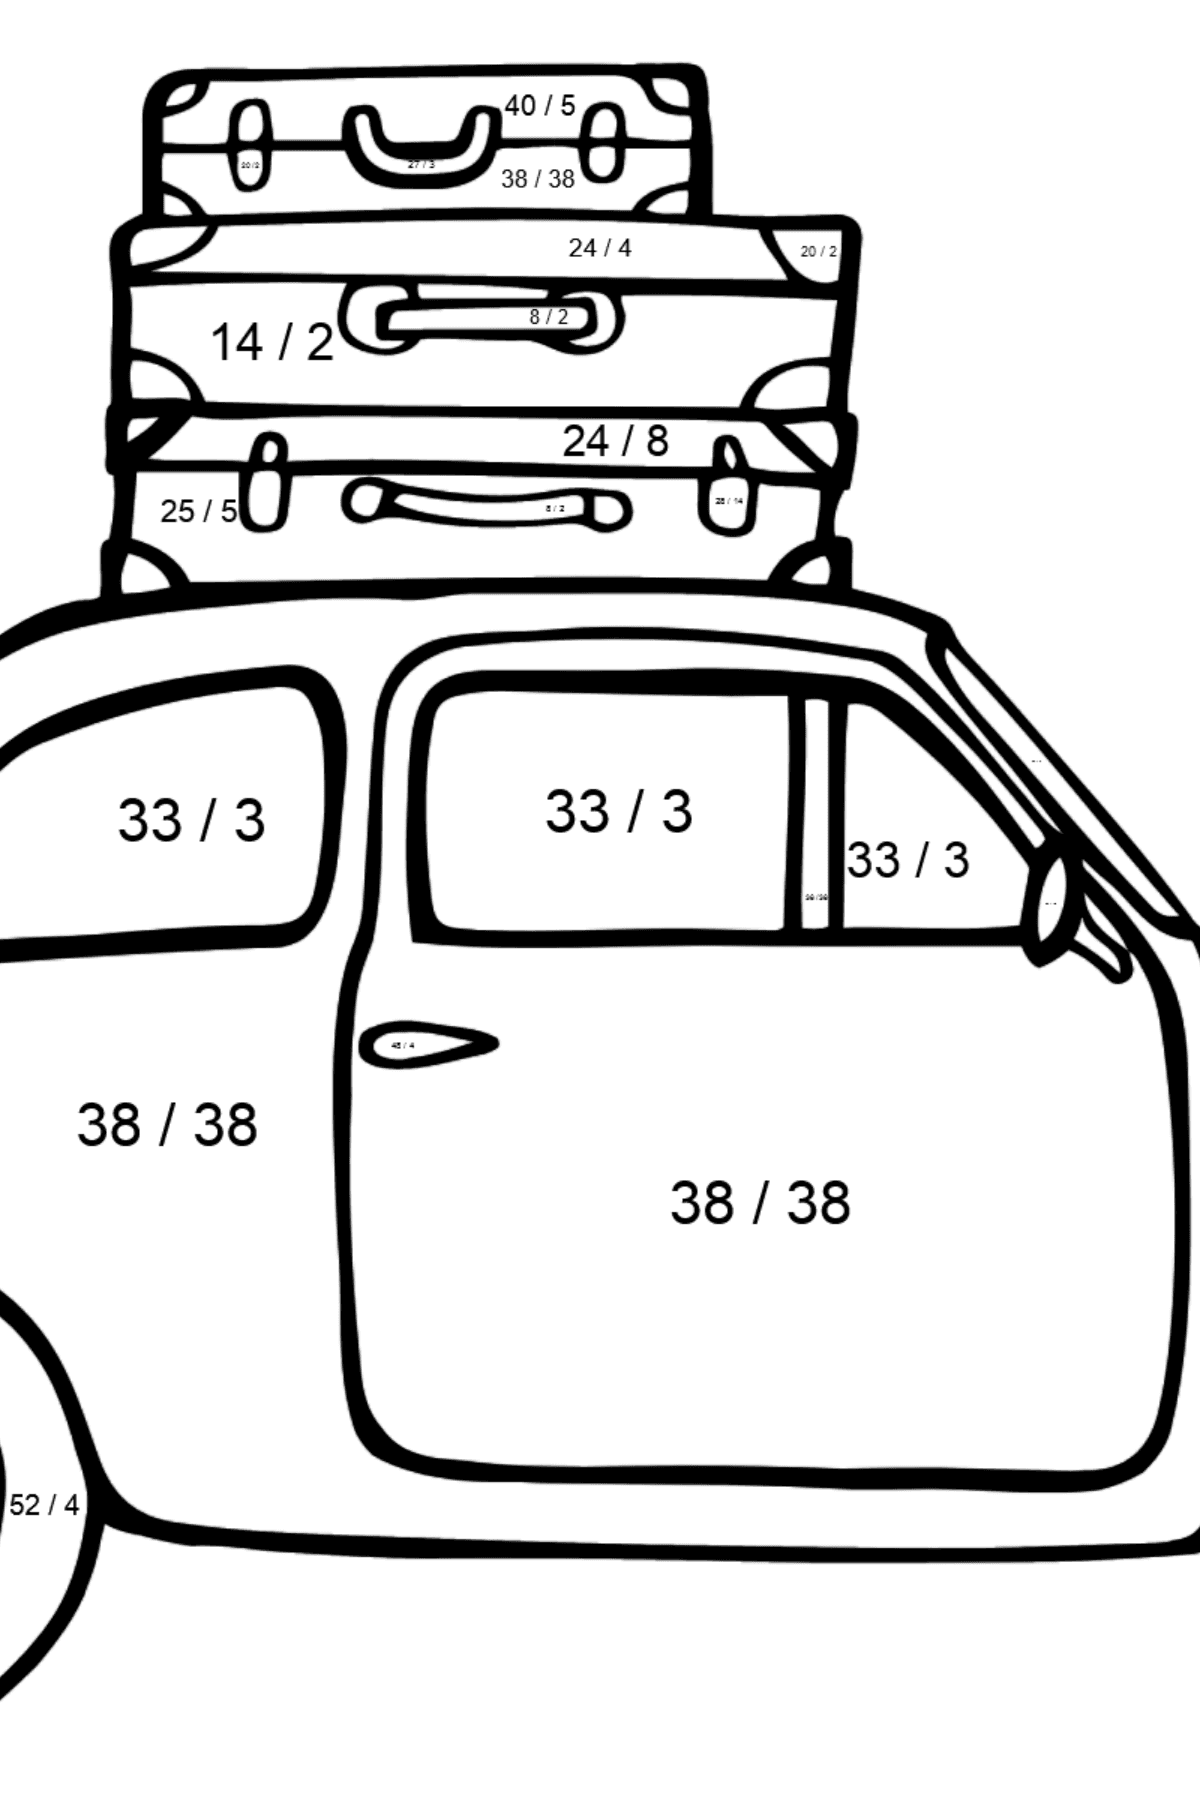 Fiat 600 car coloring page - Math Coloring - Division for Kids